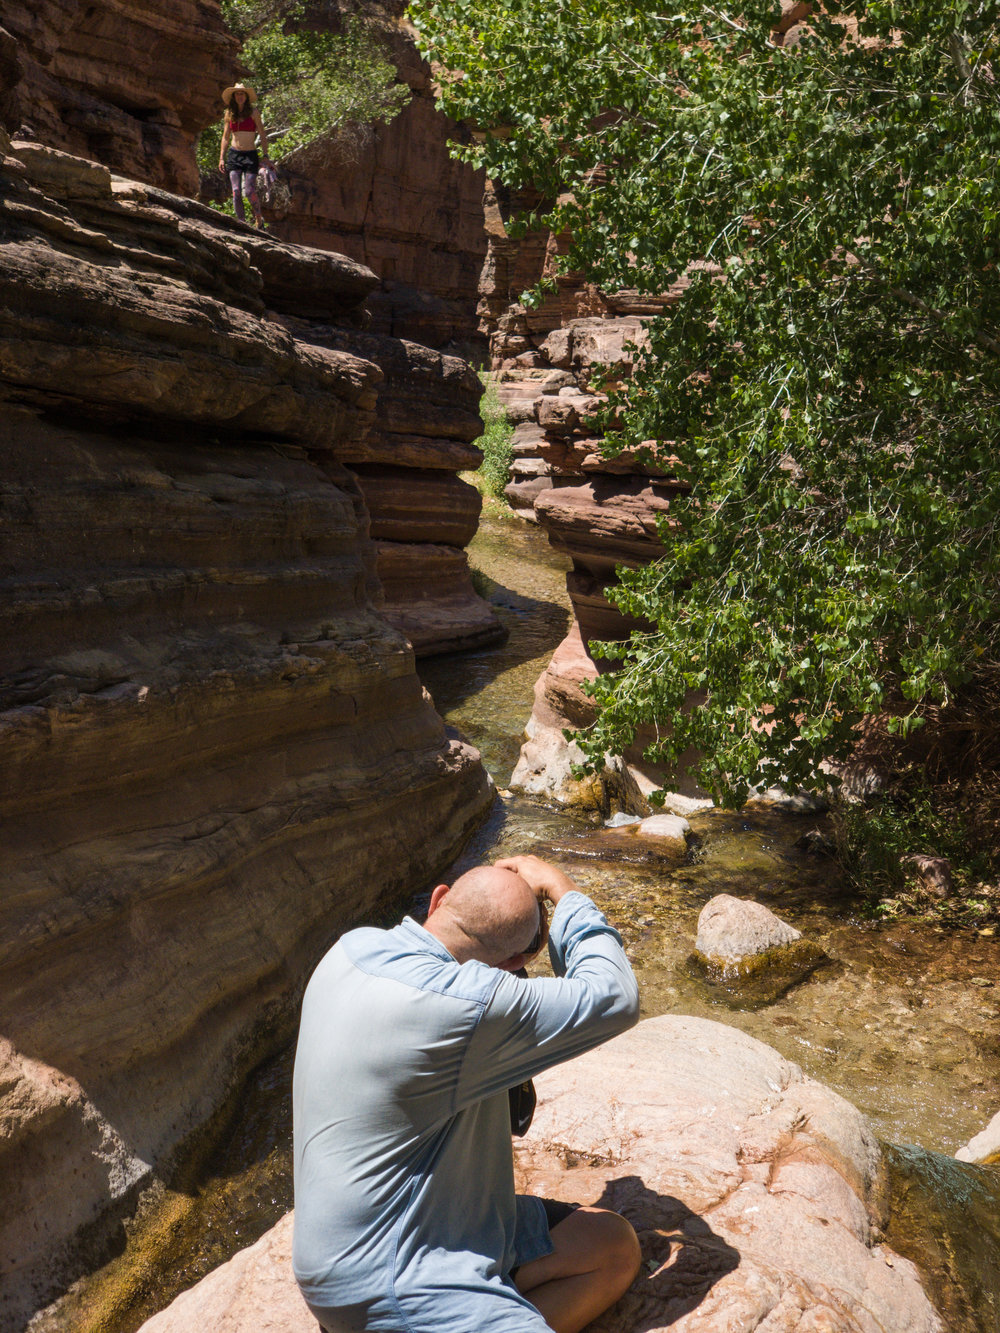 Dave taking a photo of the creek, Mariah on the ledge above. Not photoshopped. The canyon is huge.